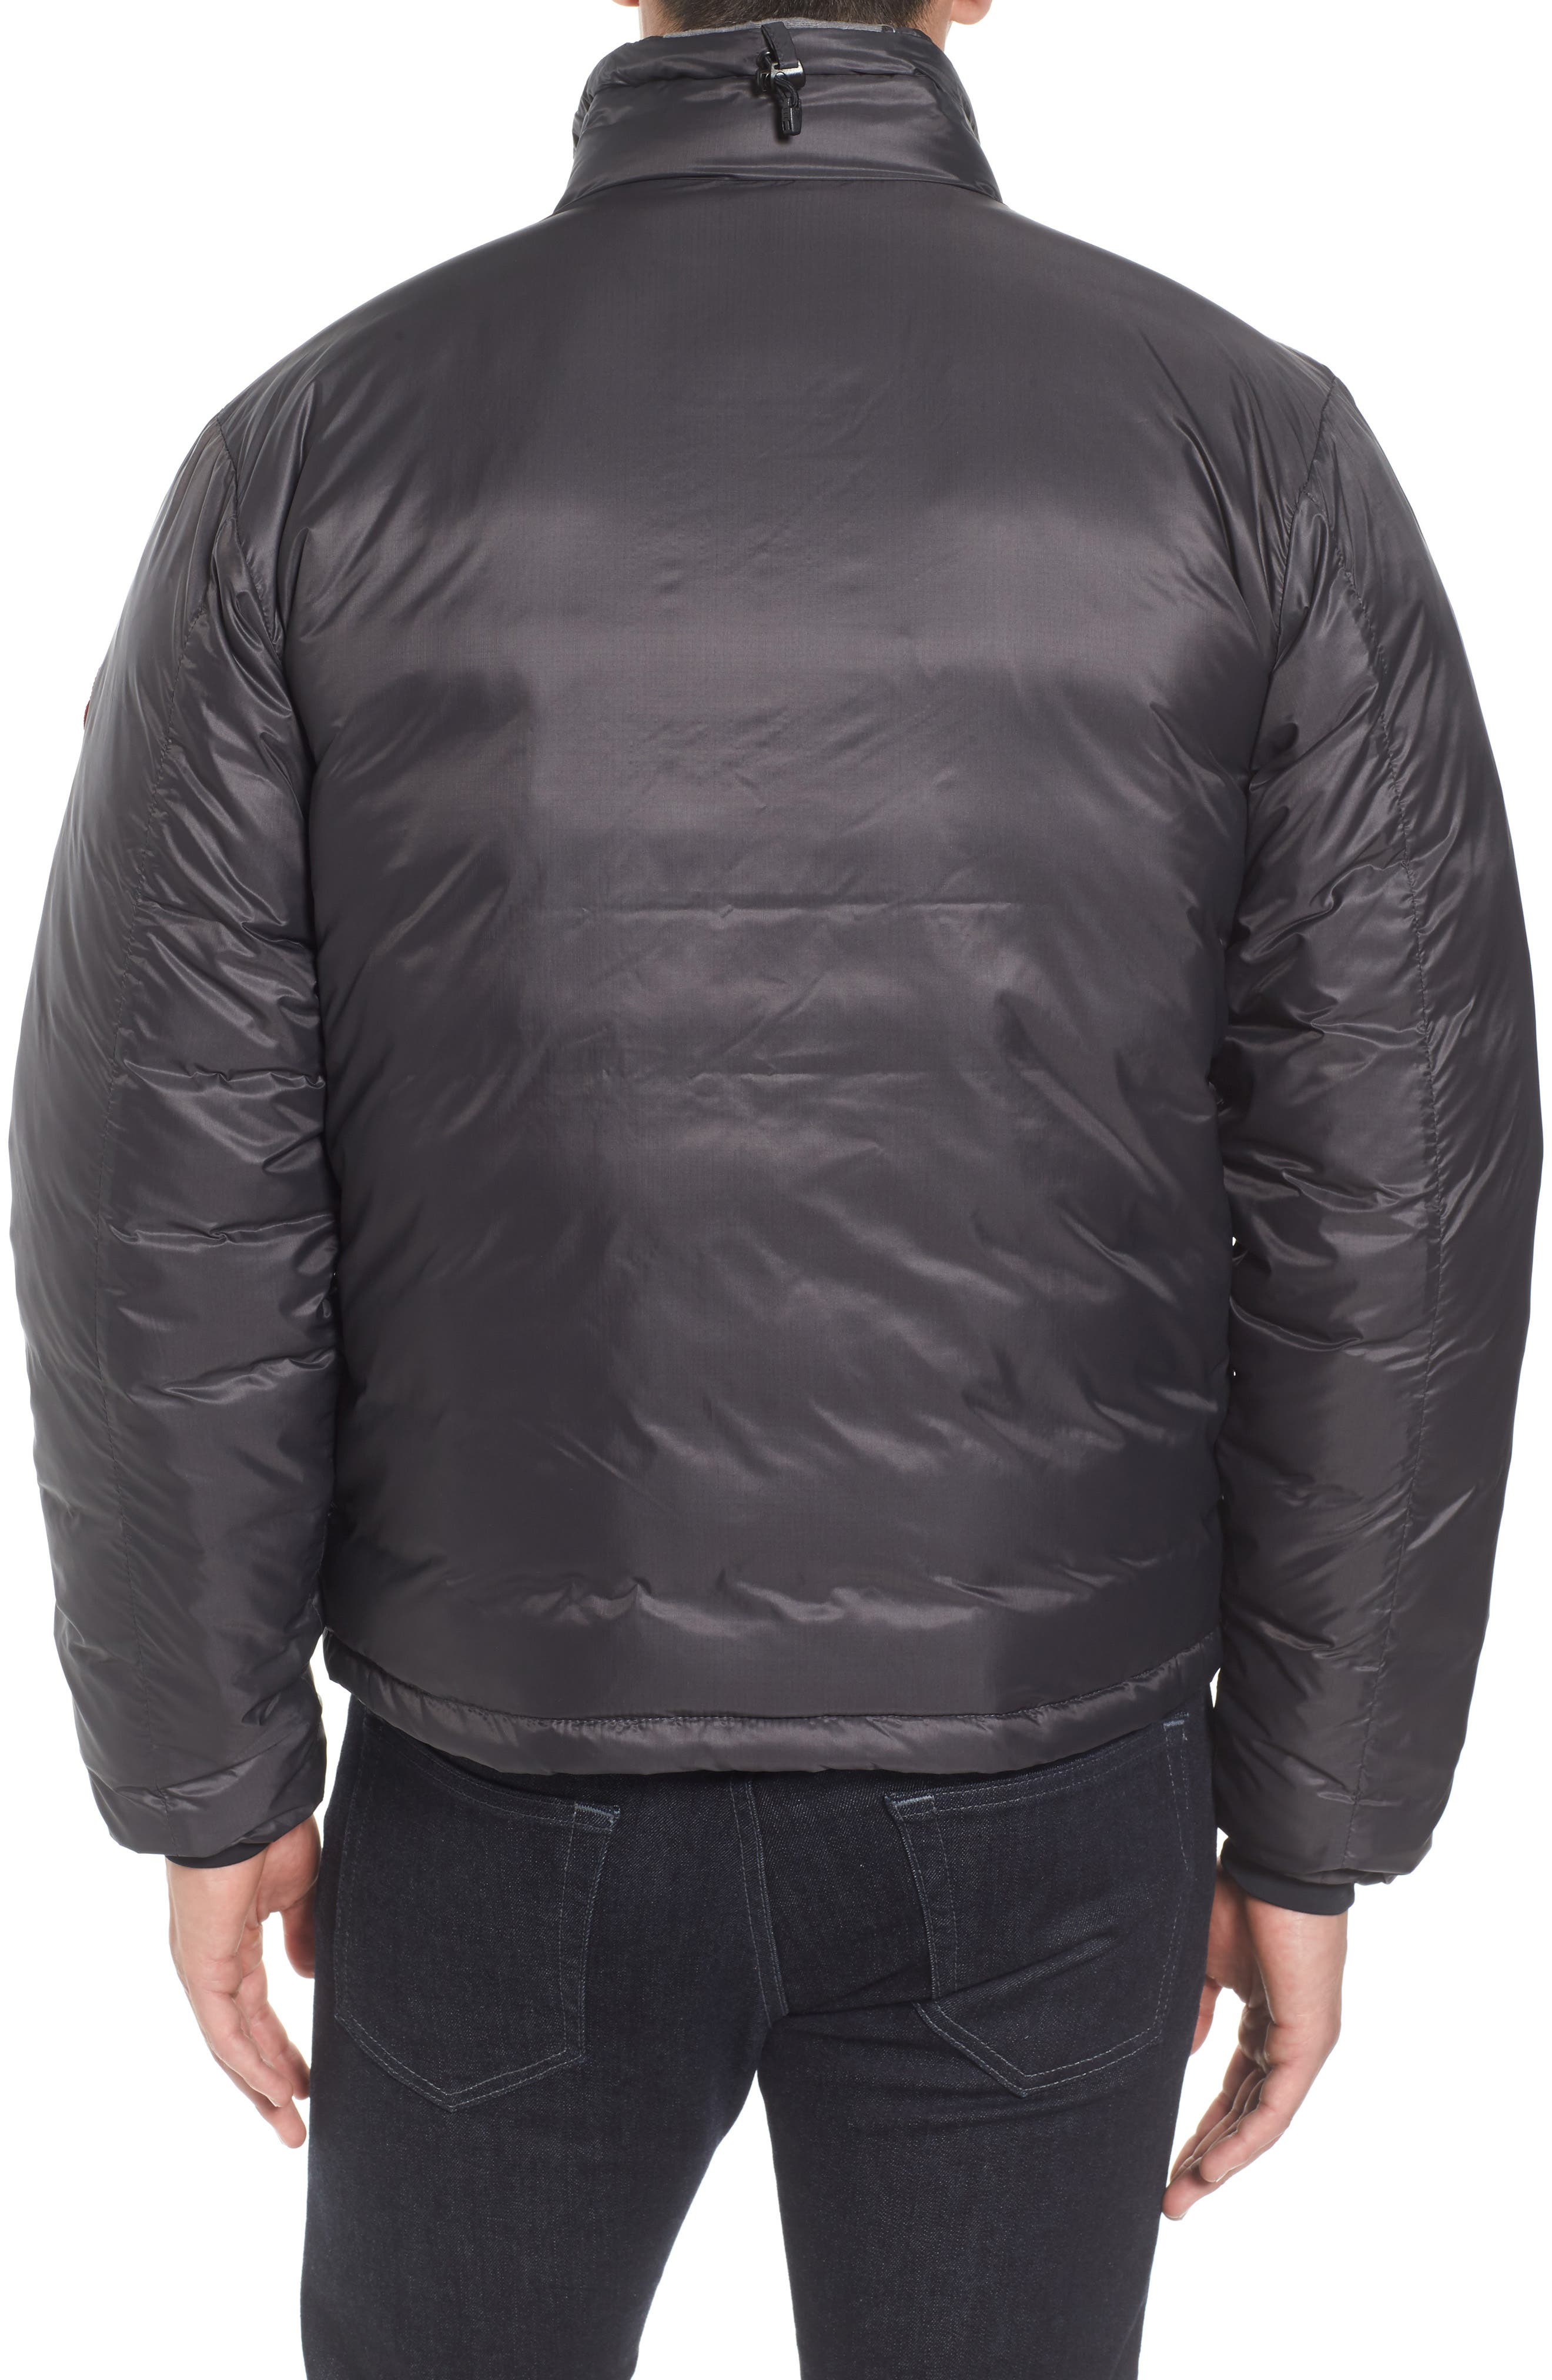 Alternate Image 2  - Canada Goose 'Lodge' Slim Fit Packable Windproof 750 Down Fill Jacket